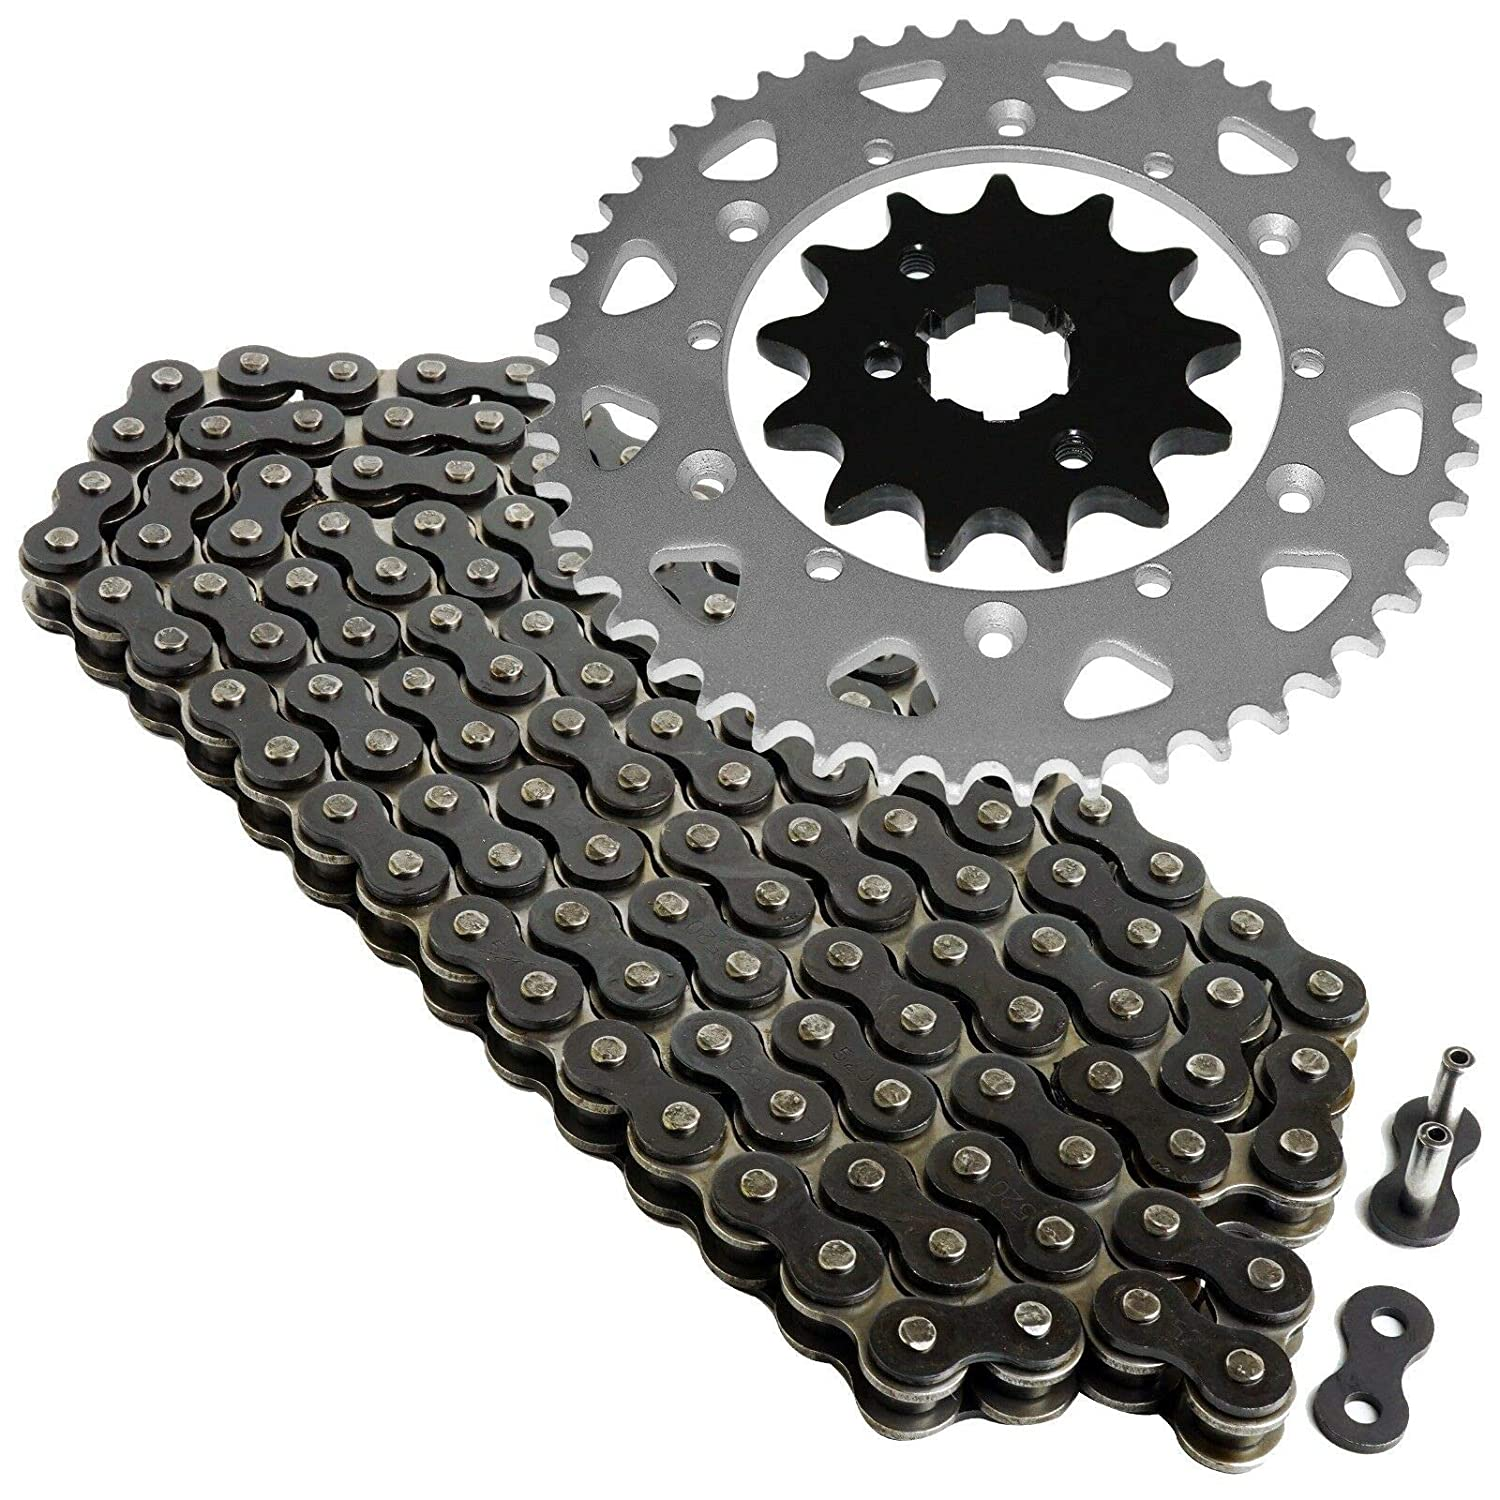 Caltric Black Drive Chain And Sprockets Kit for Yamaha Warrior 350 Yfm350X 1989-2004